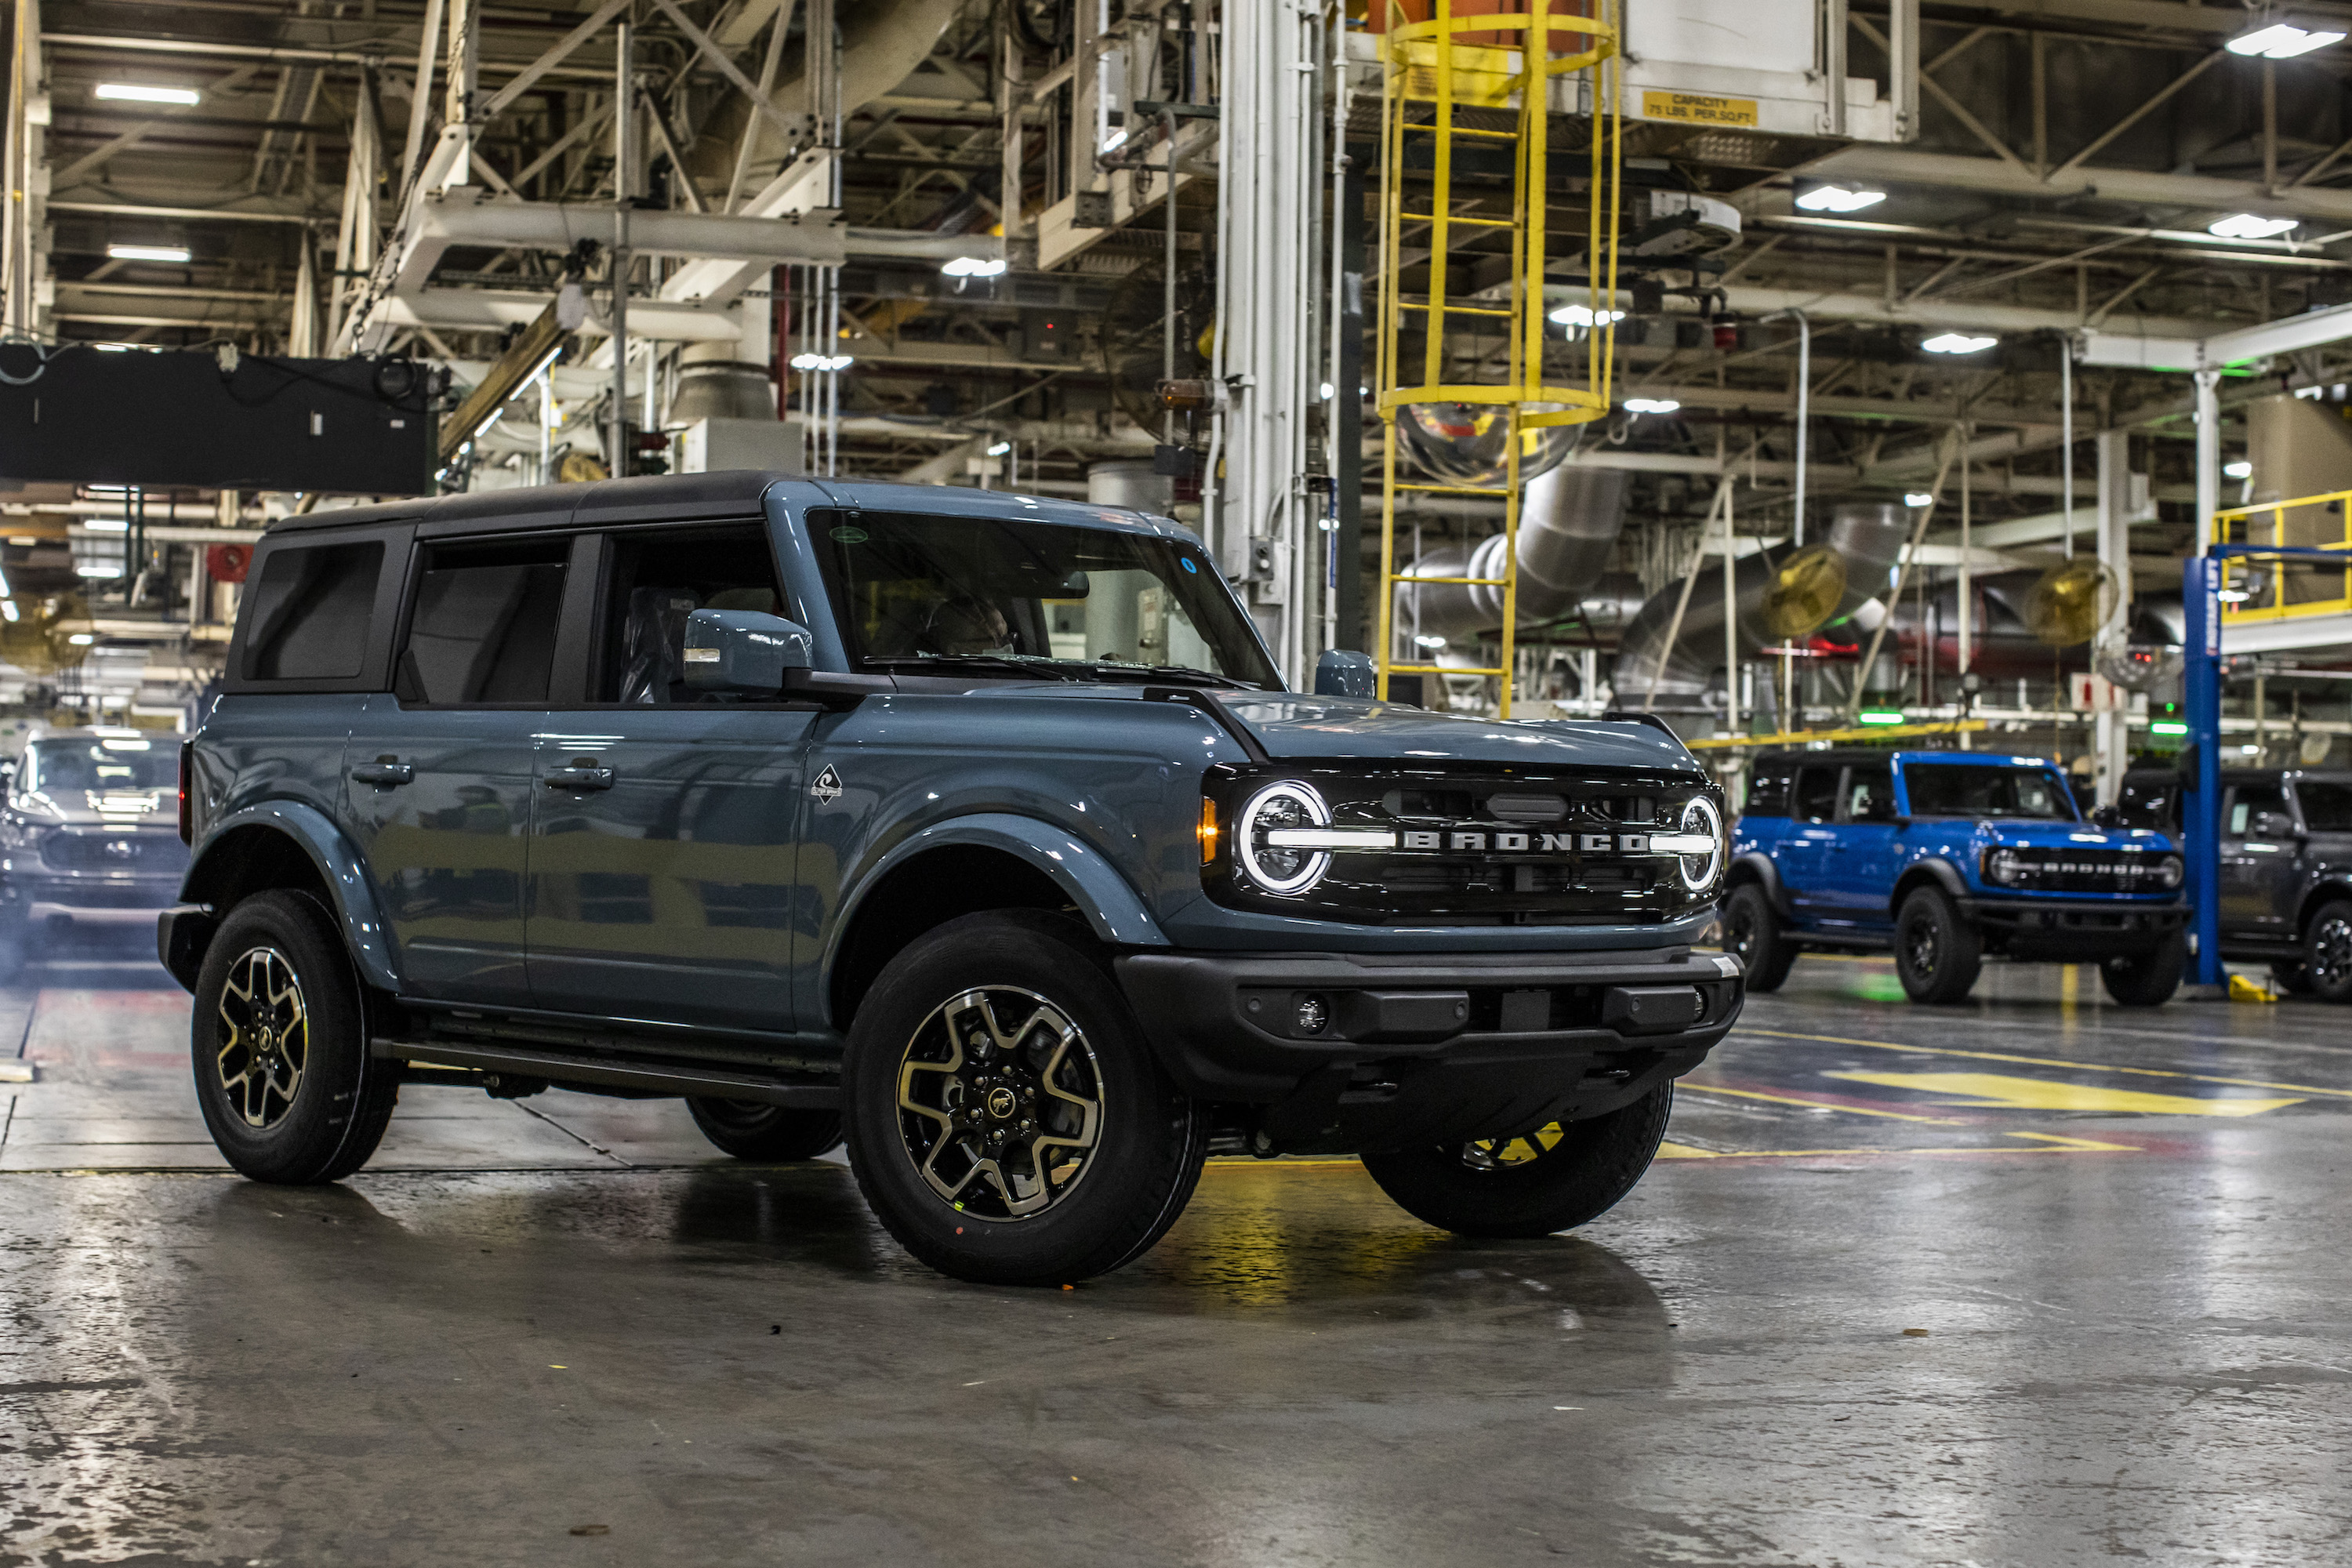 2021-ford-Bronco-production-4-door-credit-ford